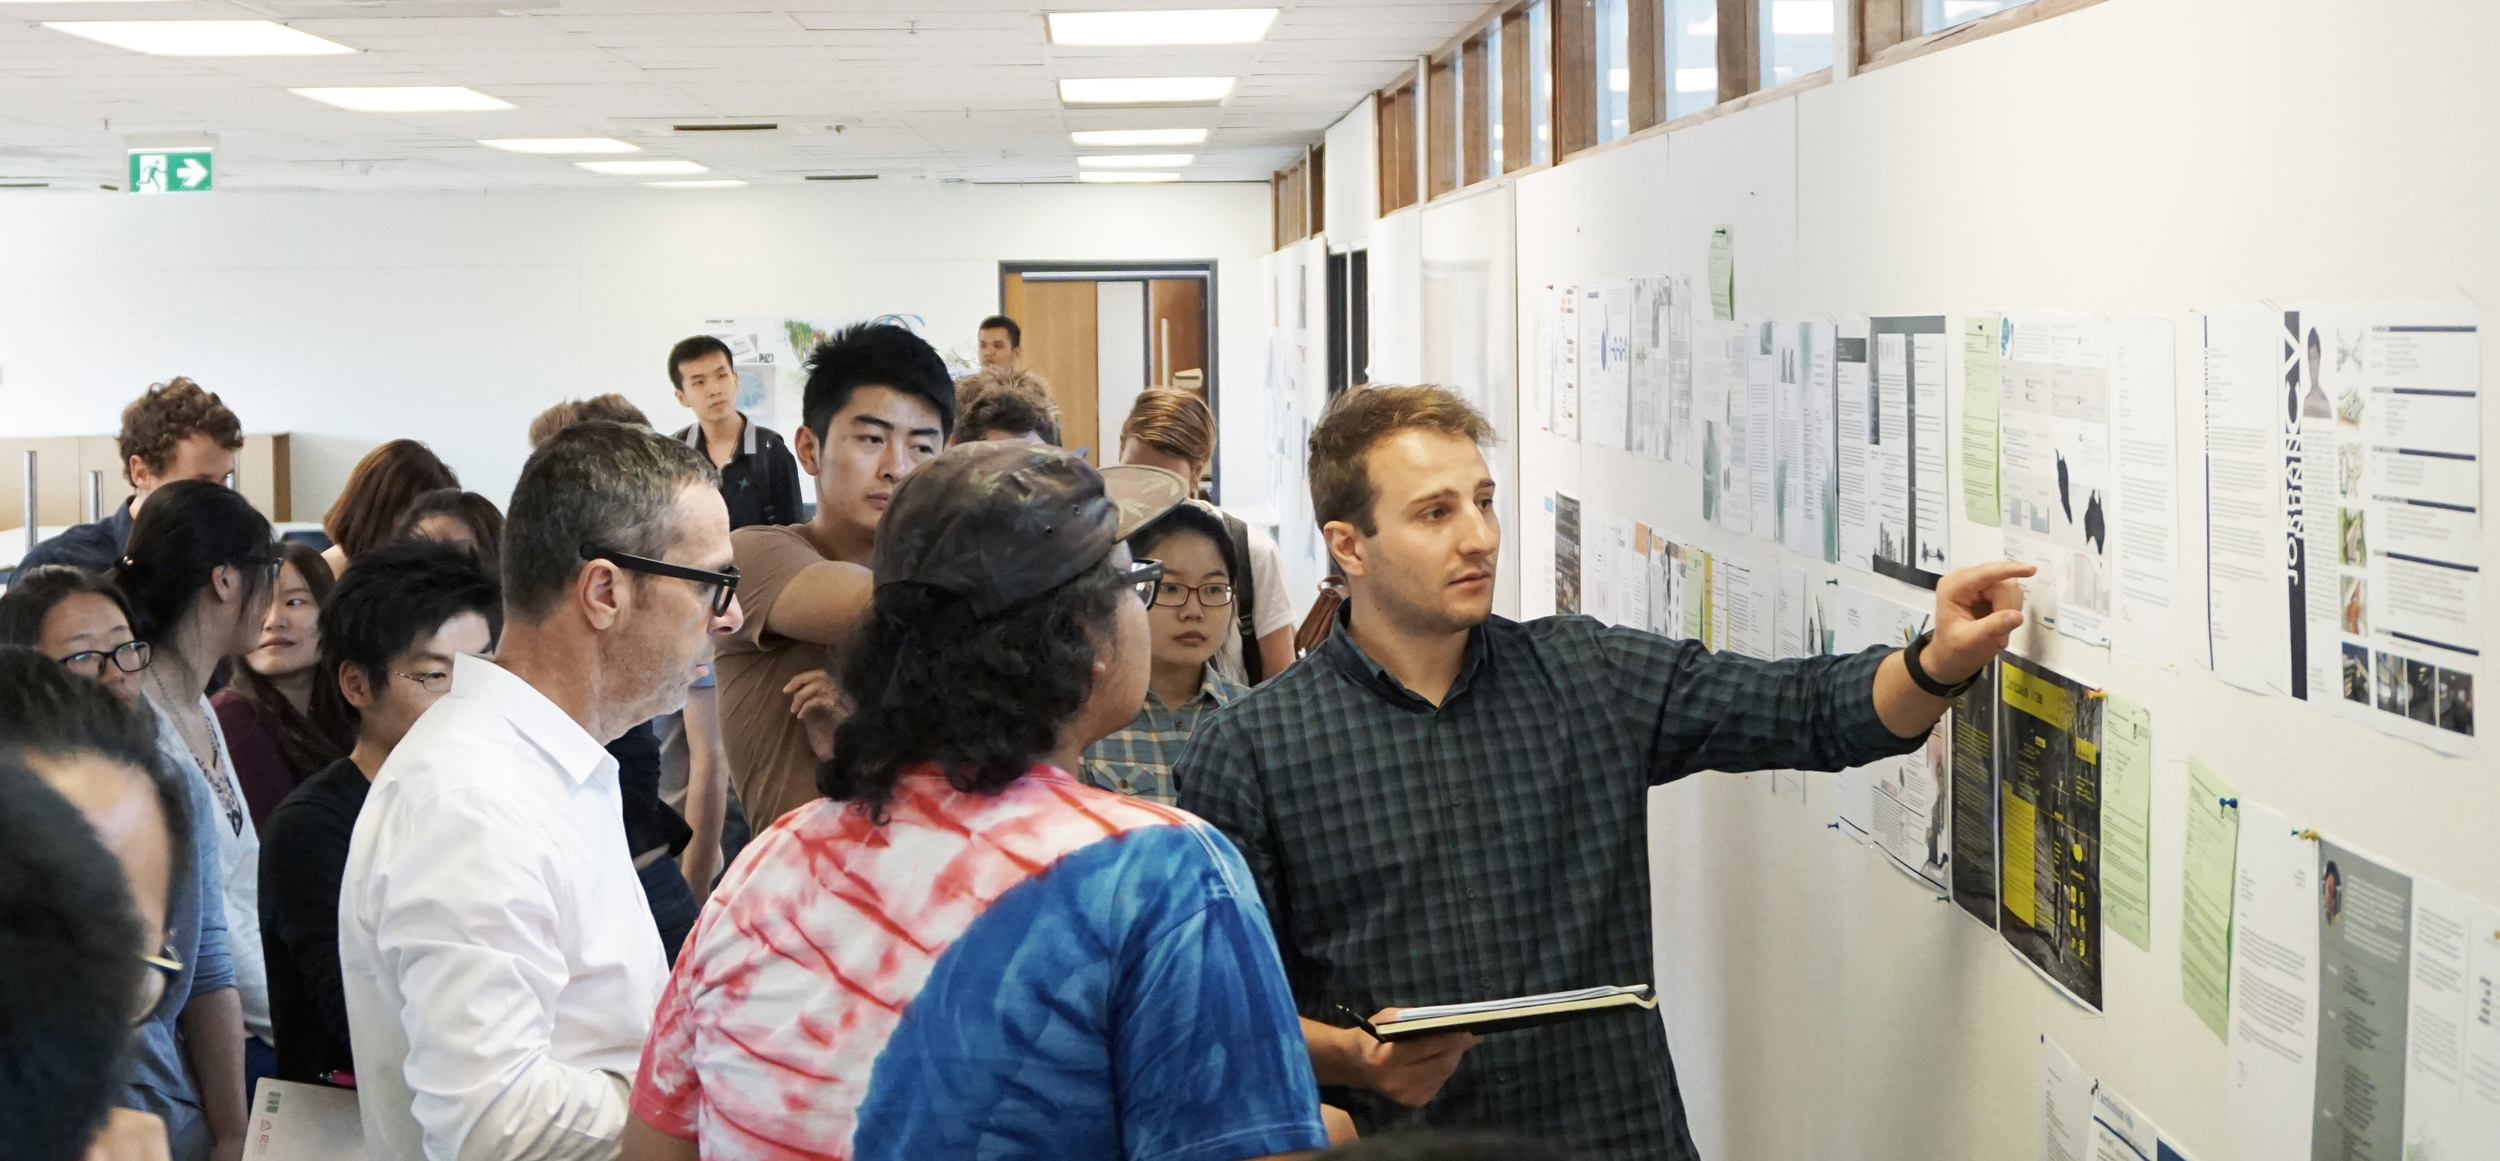 Tectvs Director Francesco Bonato (left) and Graduate of Architecture Adrian Rossi (right) perform acritique of student's work at the University of Adelaide